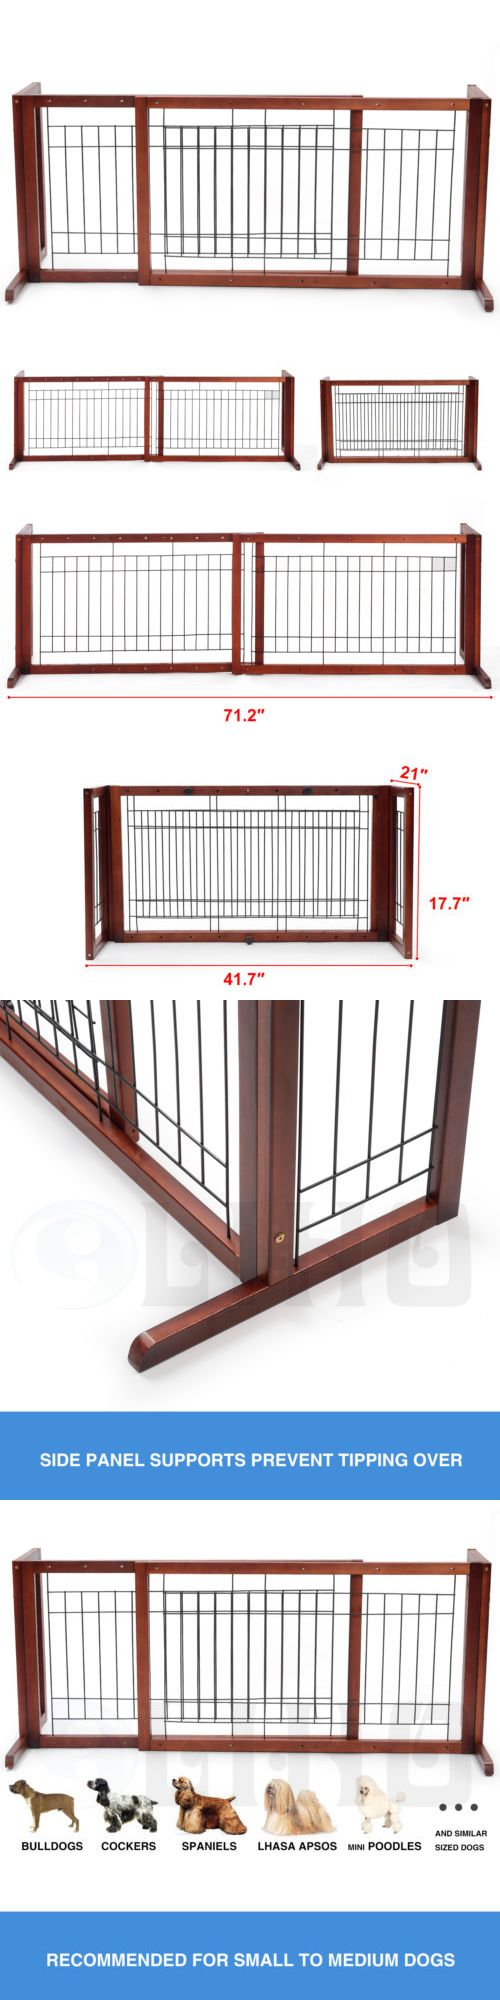 Baby Safety and Health 20433: Adjustable Solid Wood Pet Fence Free Standing Dog Gate Indoor Hallway Safe Gate -> BUY IT NOW ONLY: $39.9 on eBay!